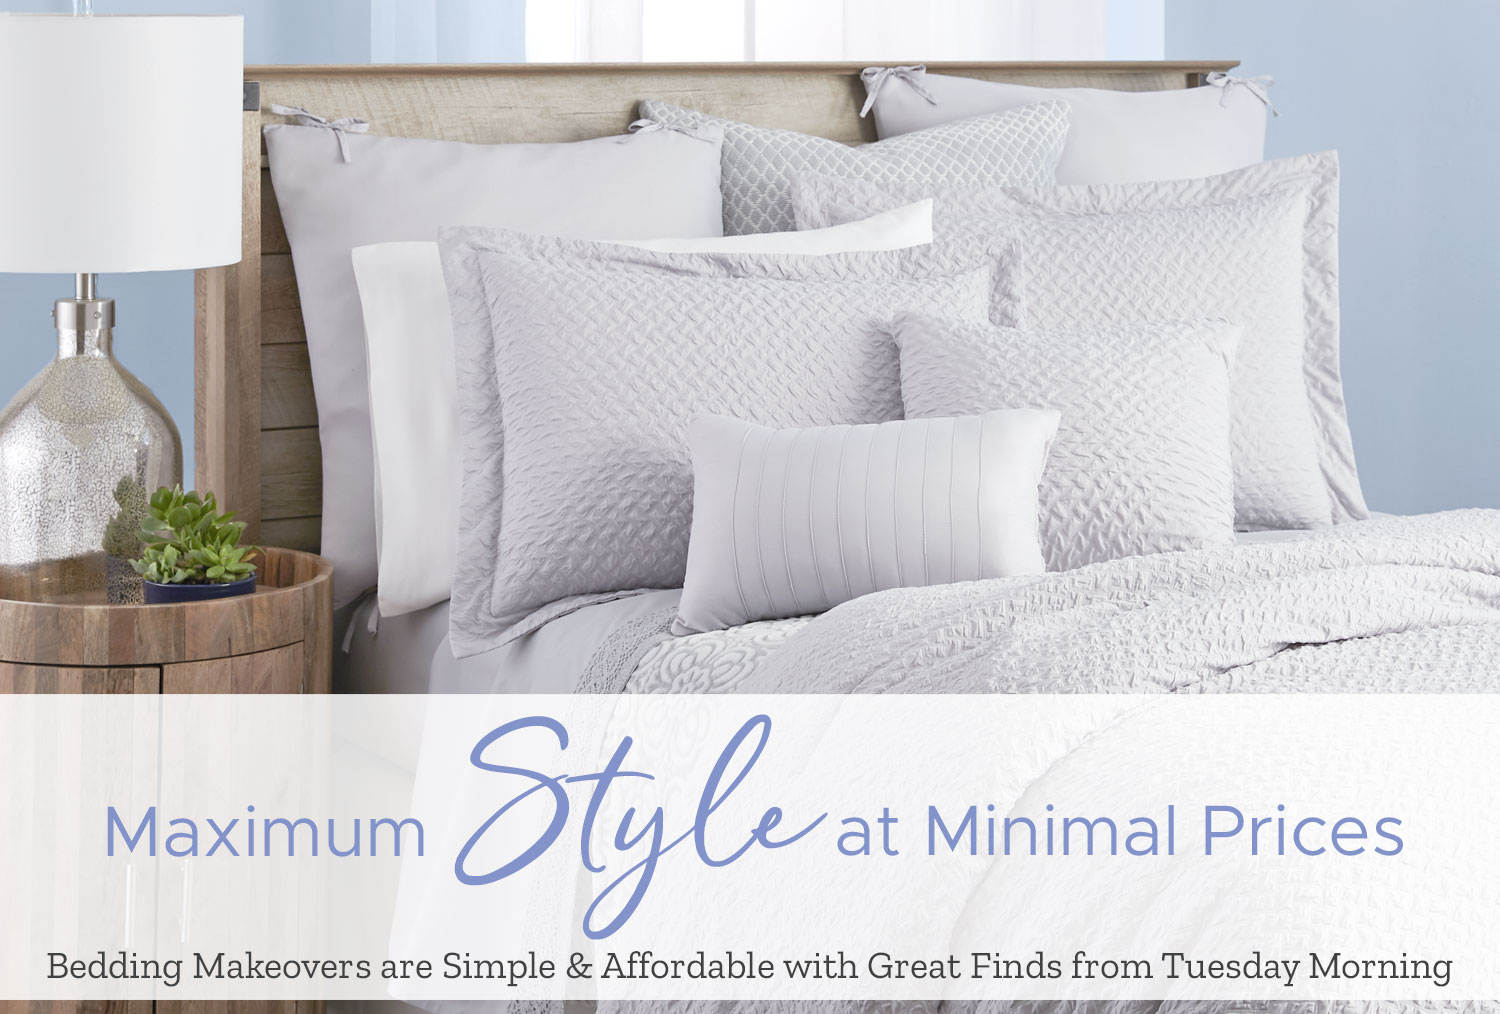 Maximum Style at Minimal Prices. Bedding Makeover are simple and affordable with great finds from Tuesday Morning.